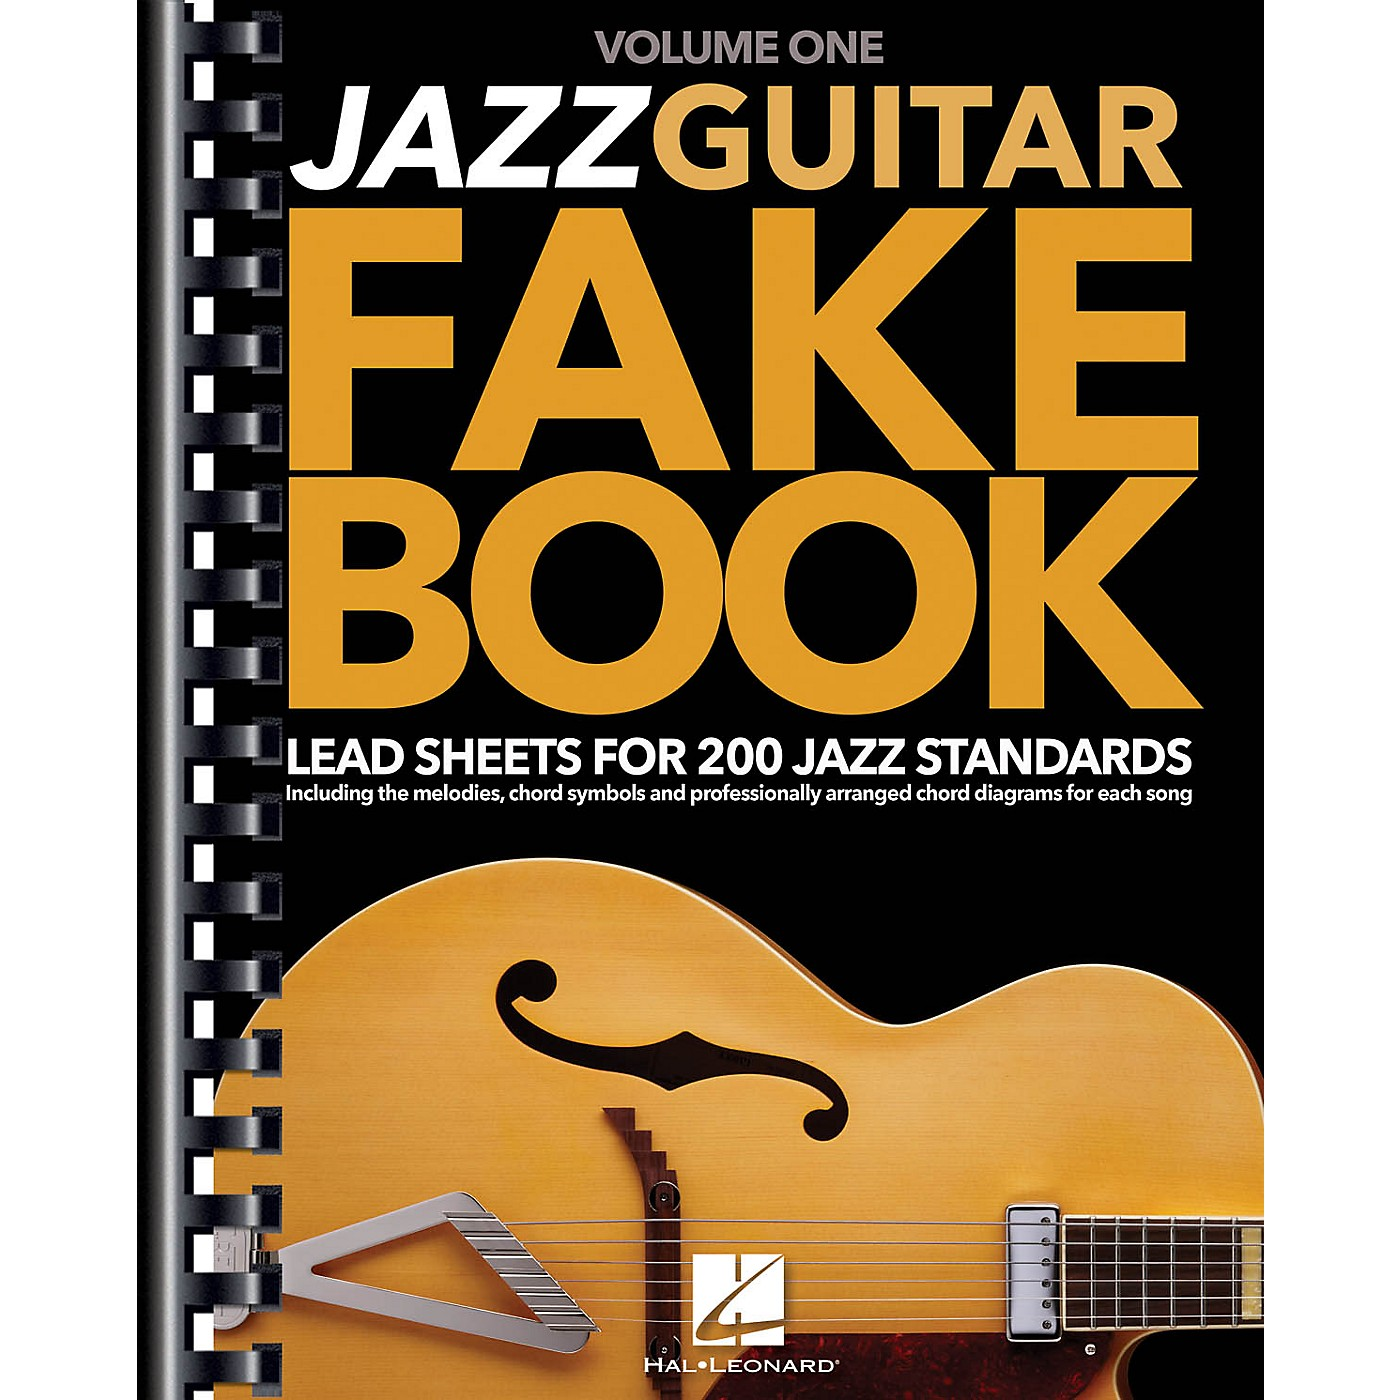 Hal Leonard Jazz Guitar Fake Book - Volume 1 (Lead Sheets for 200 Jazz Standards) Guitar Book Series Softcover thumbnail